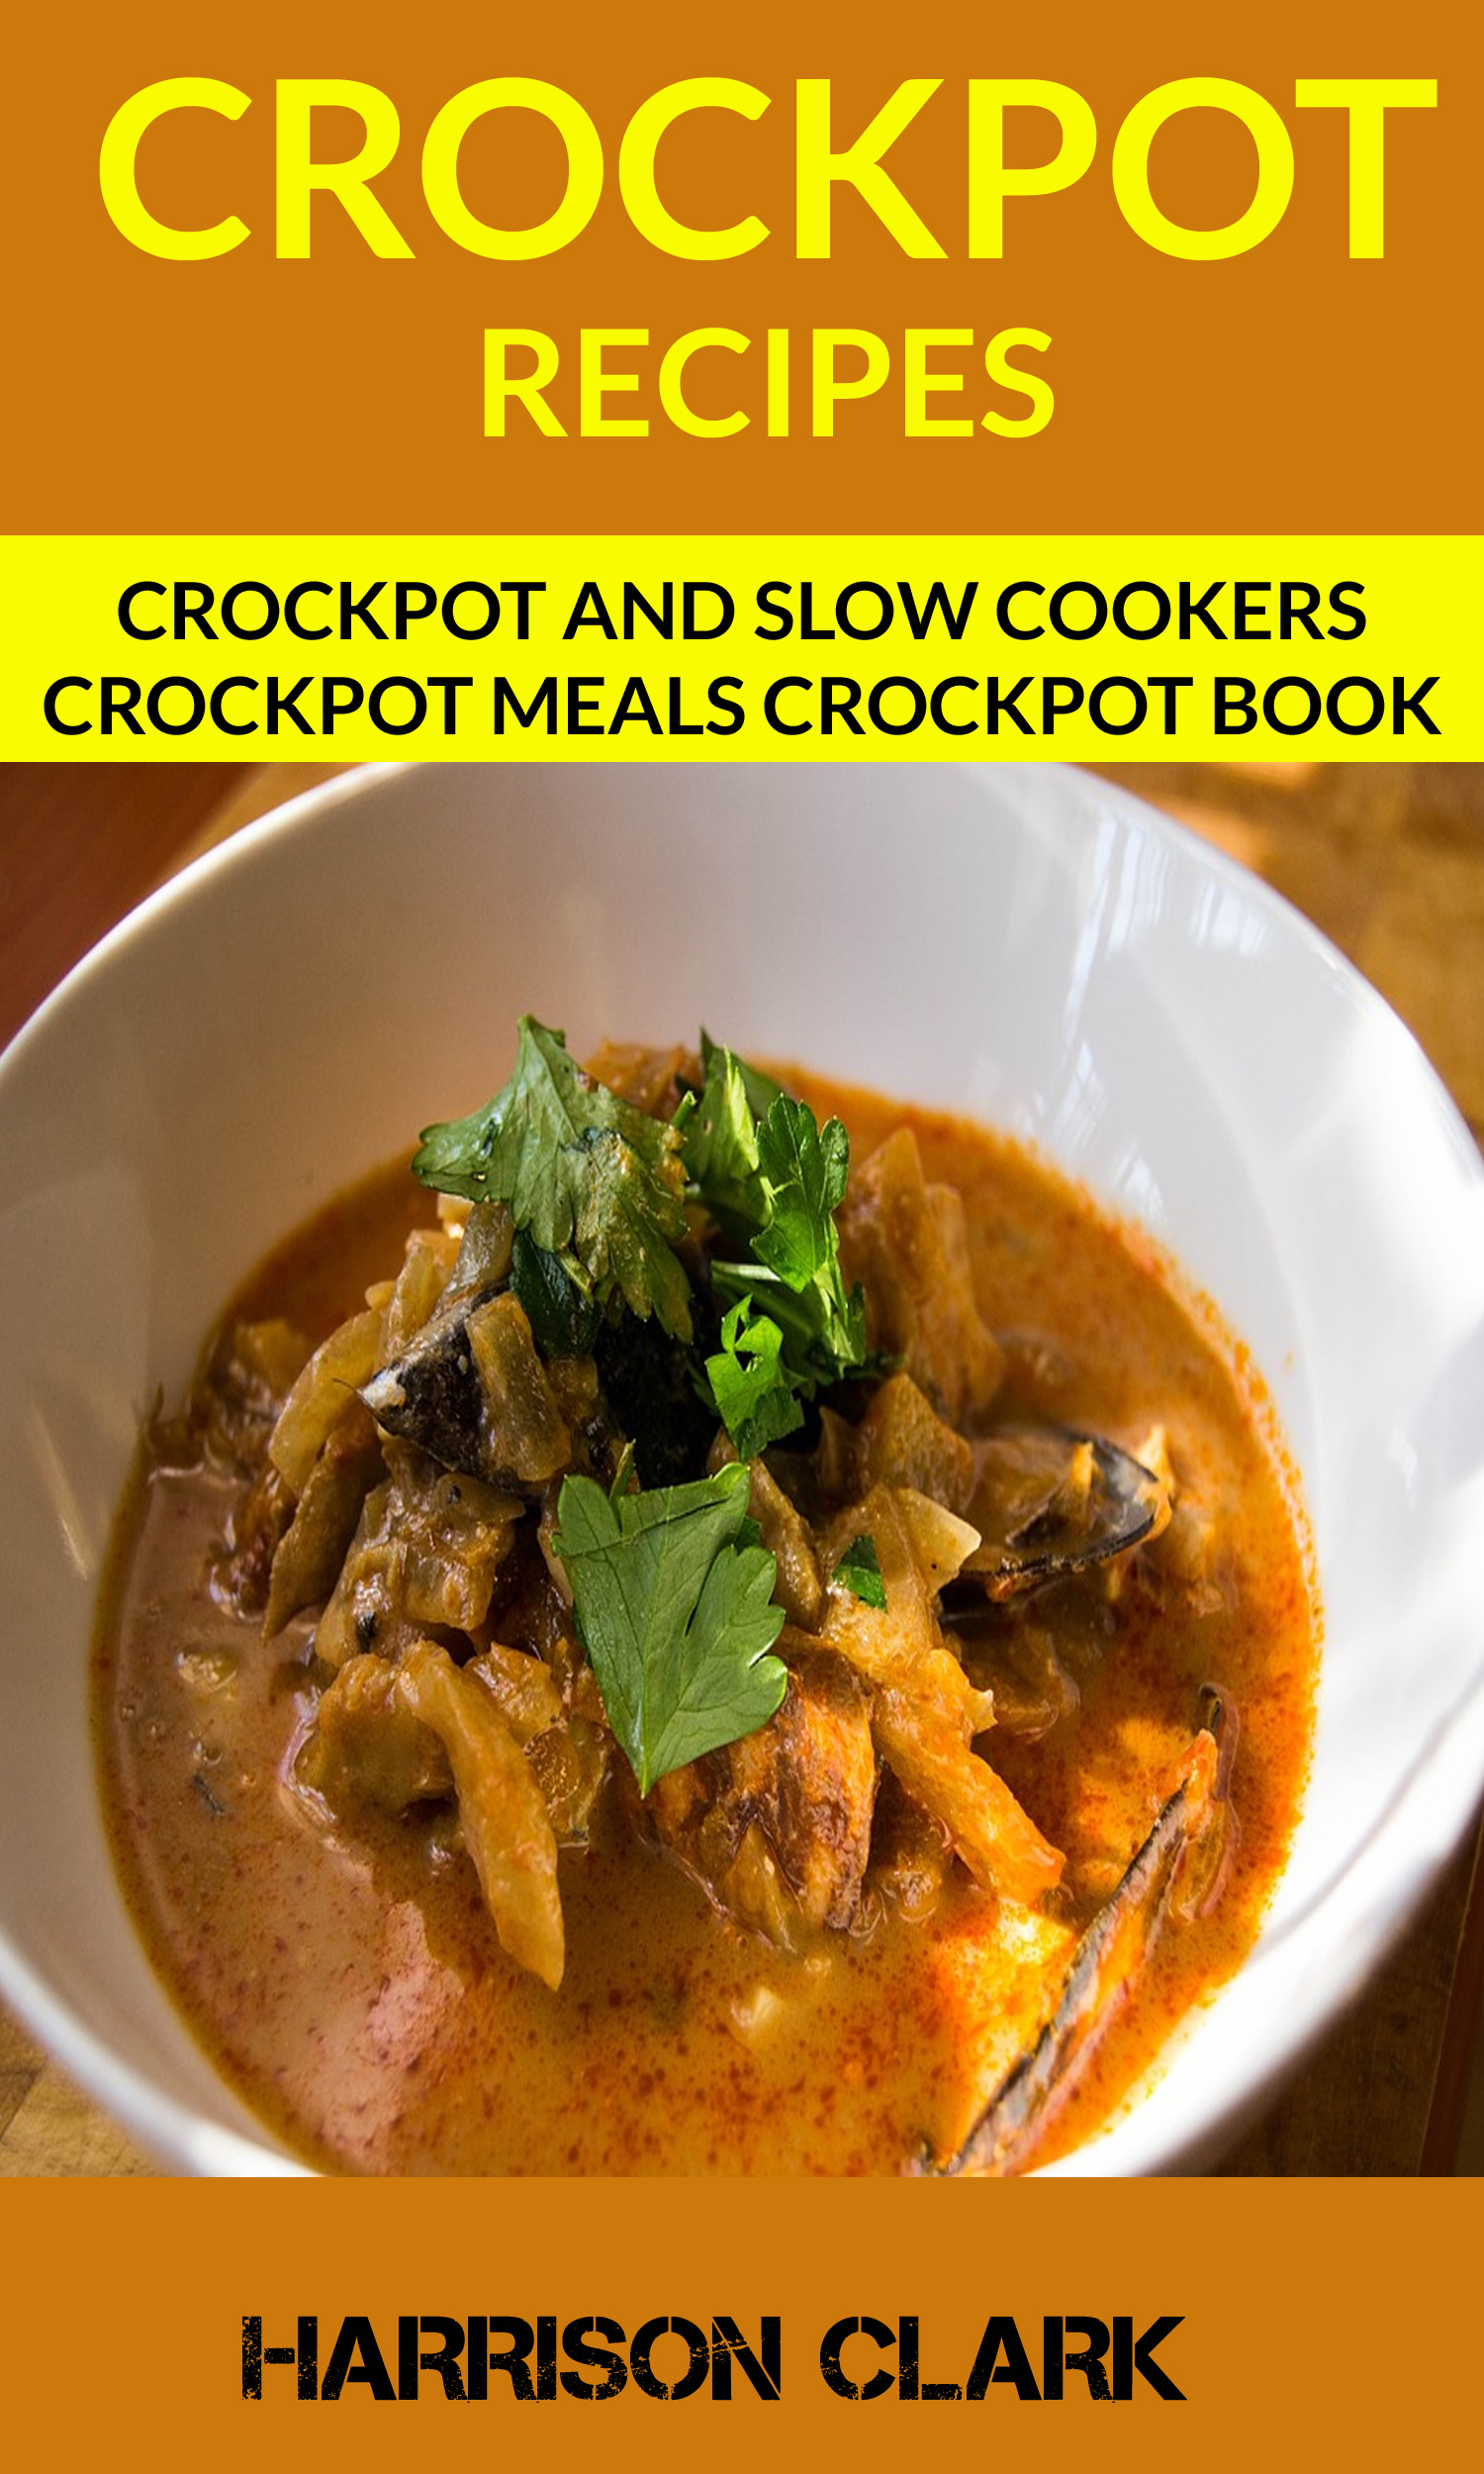 Crockpot recipes: crockpot and slow cookers crockpot meals crockpot book